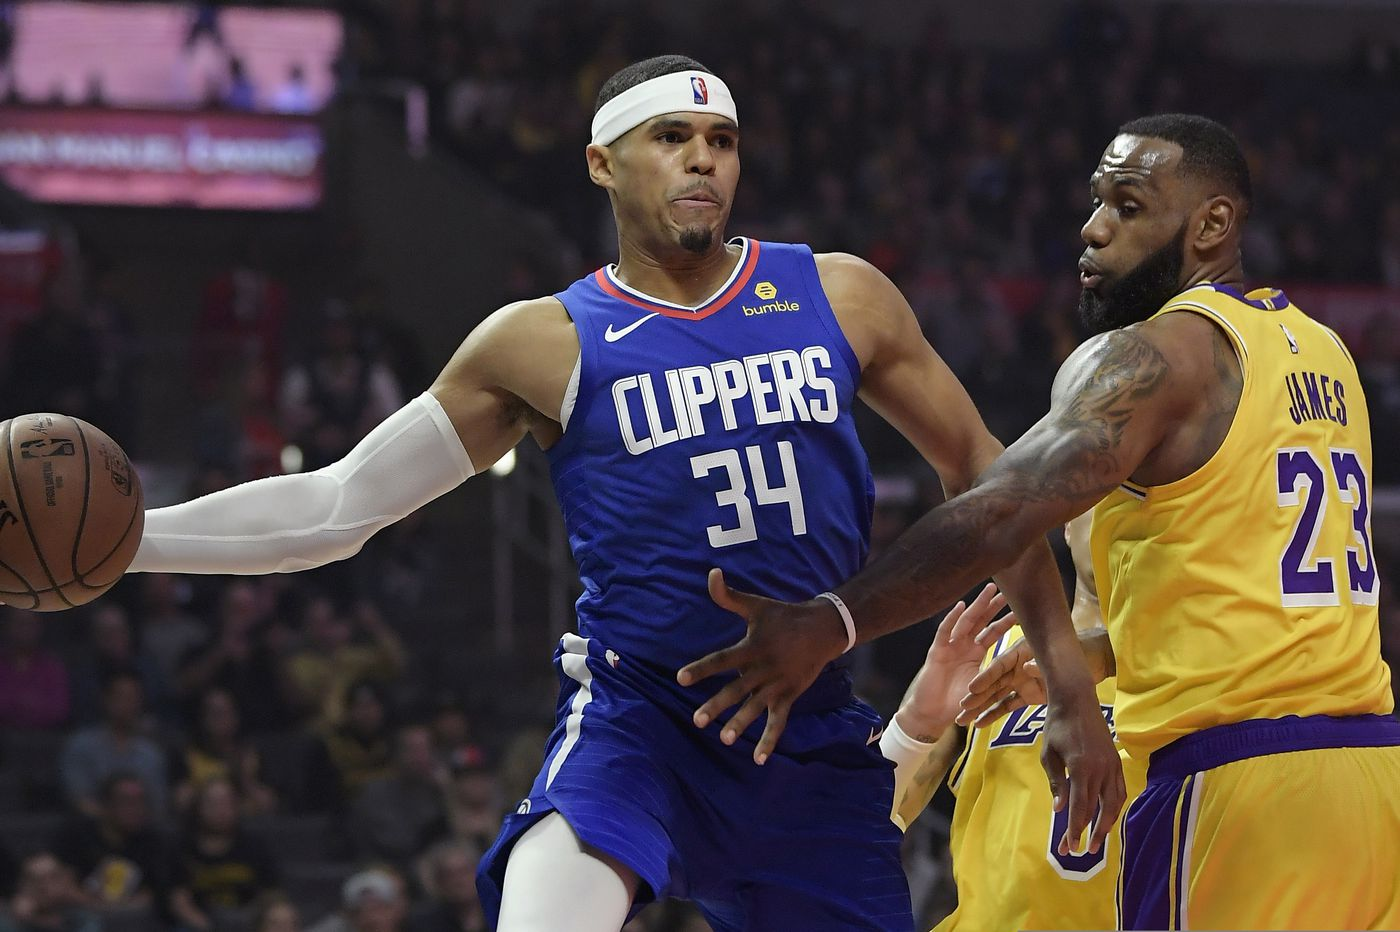 Sixers trade three players to Clippers for Tobias Harris